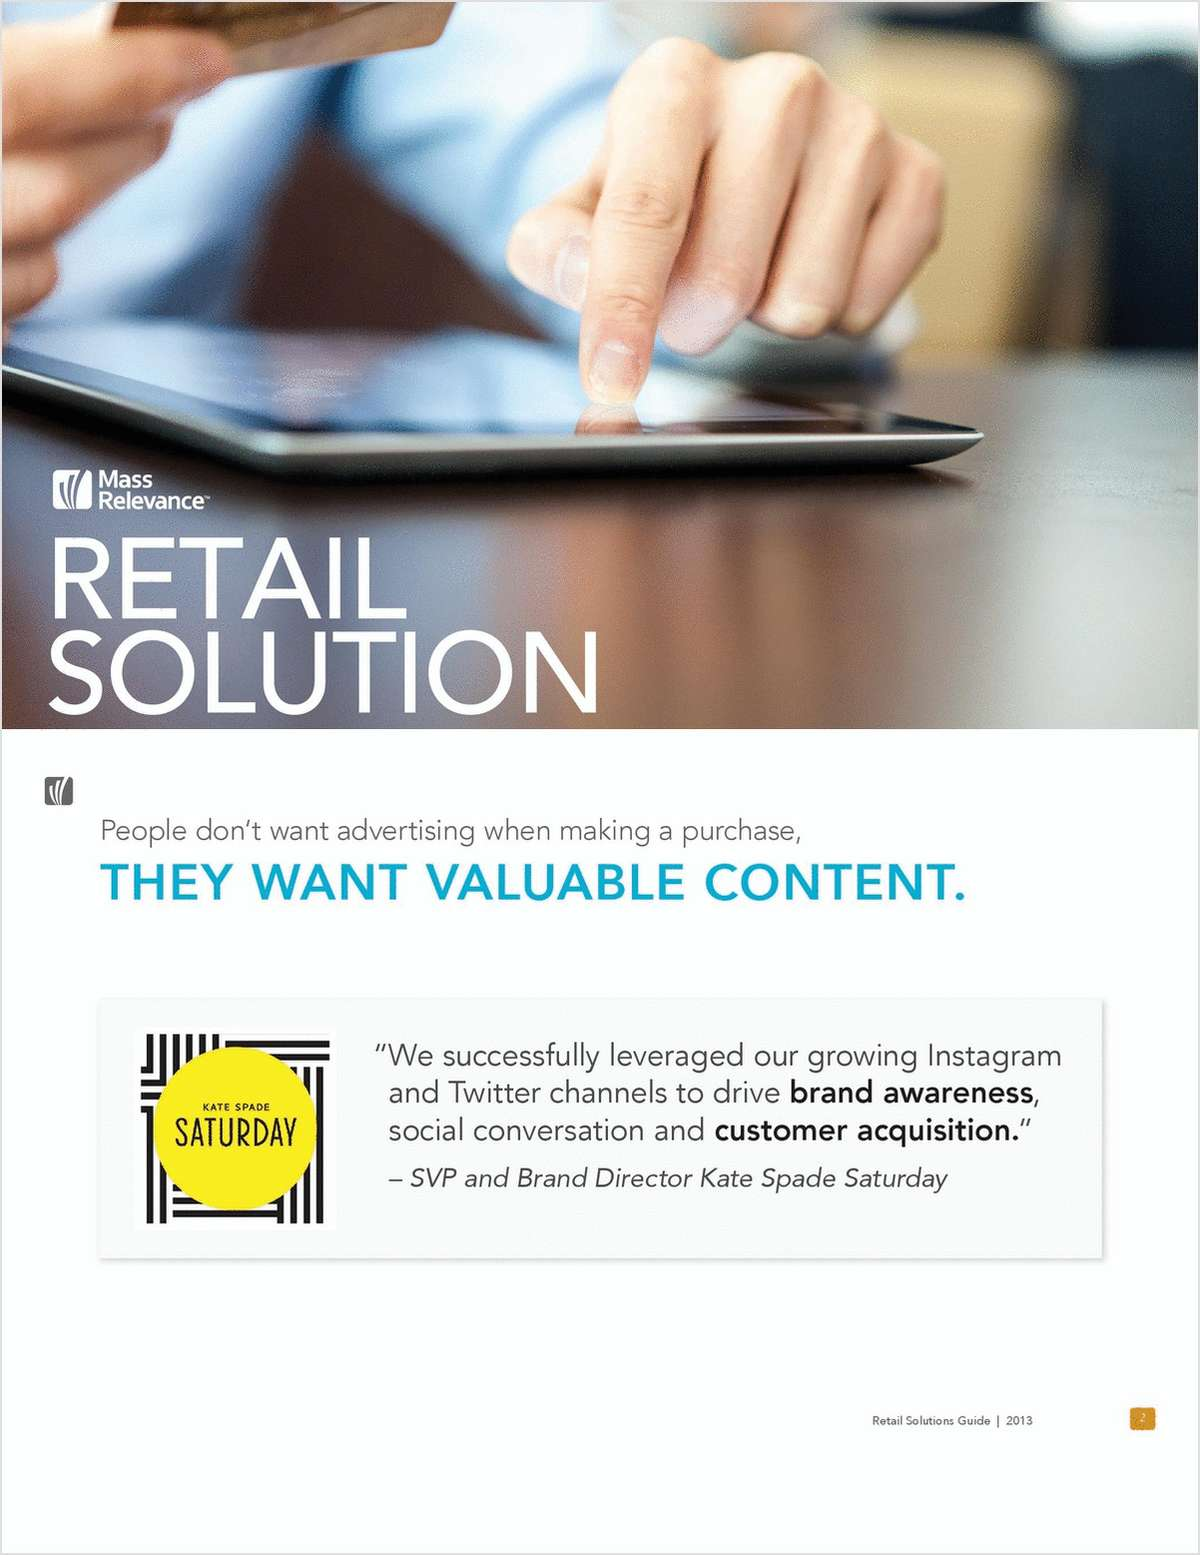 Social Retail Solution Guide: Use Social Media Content To Drive Commerce